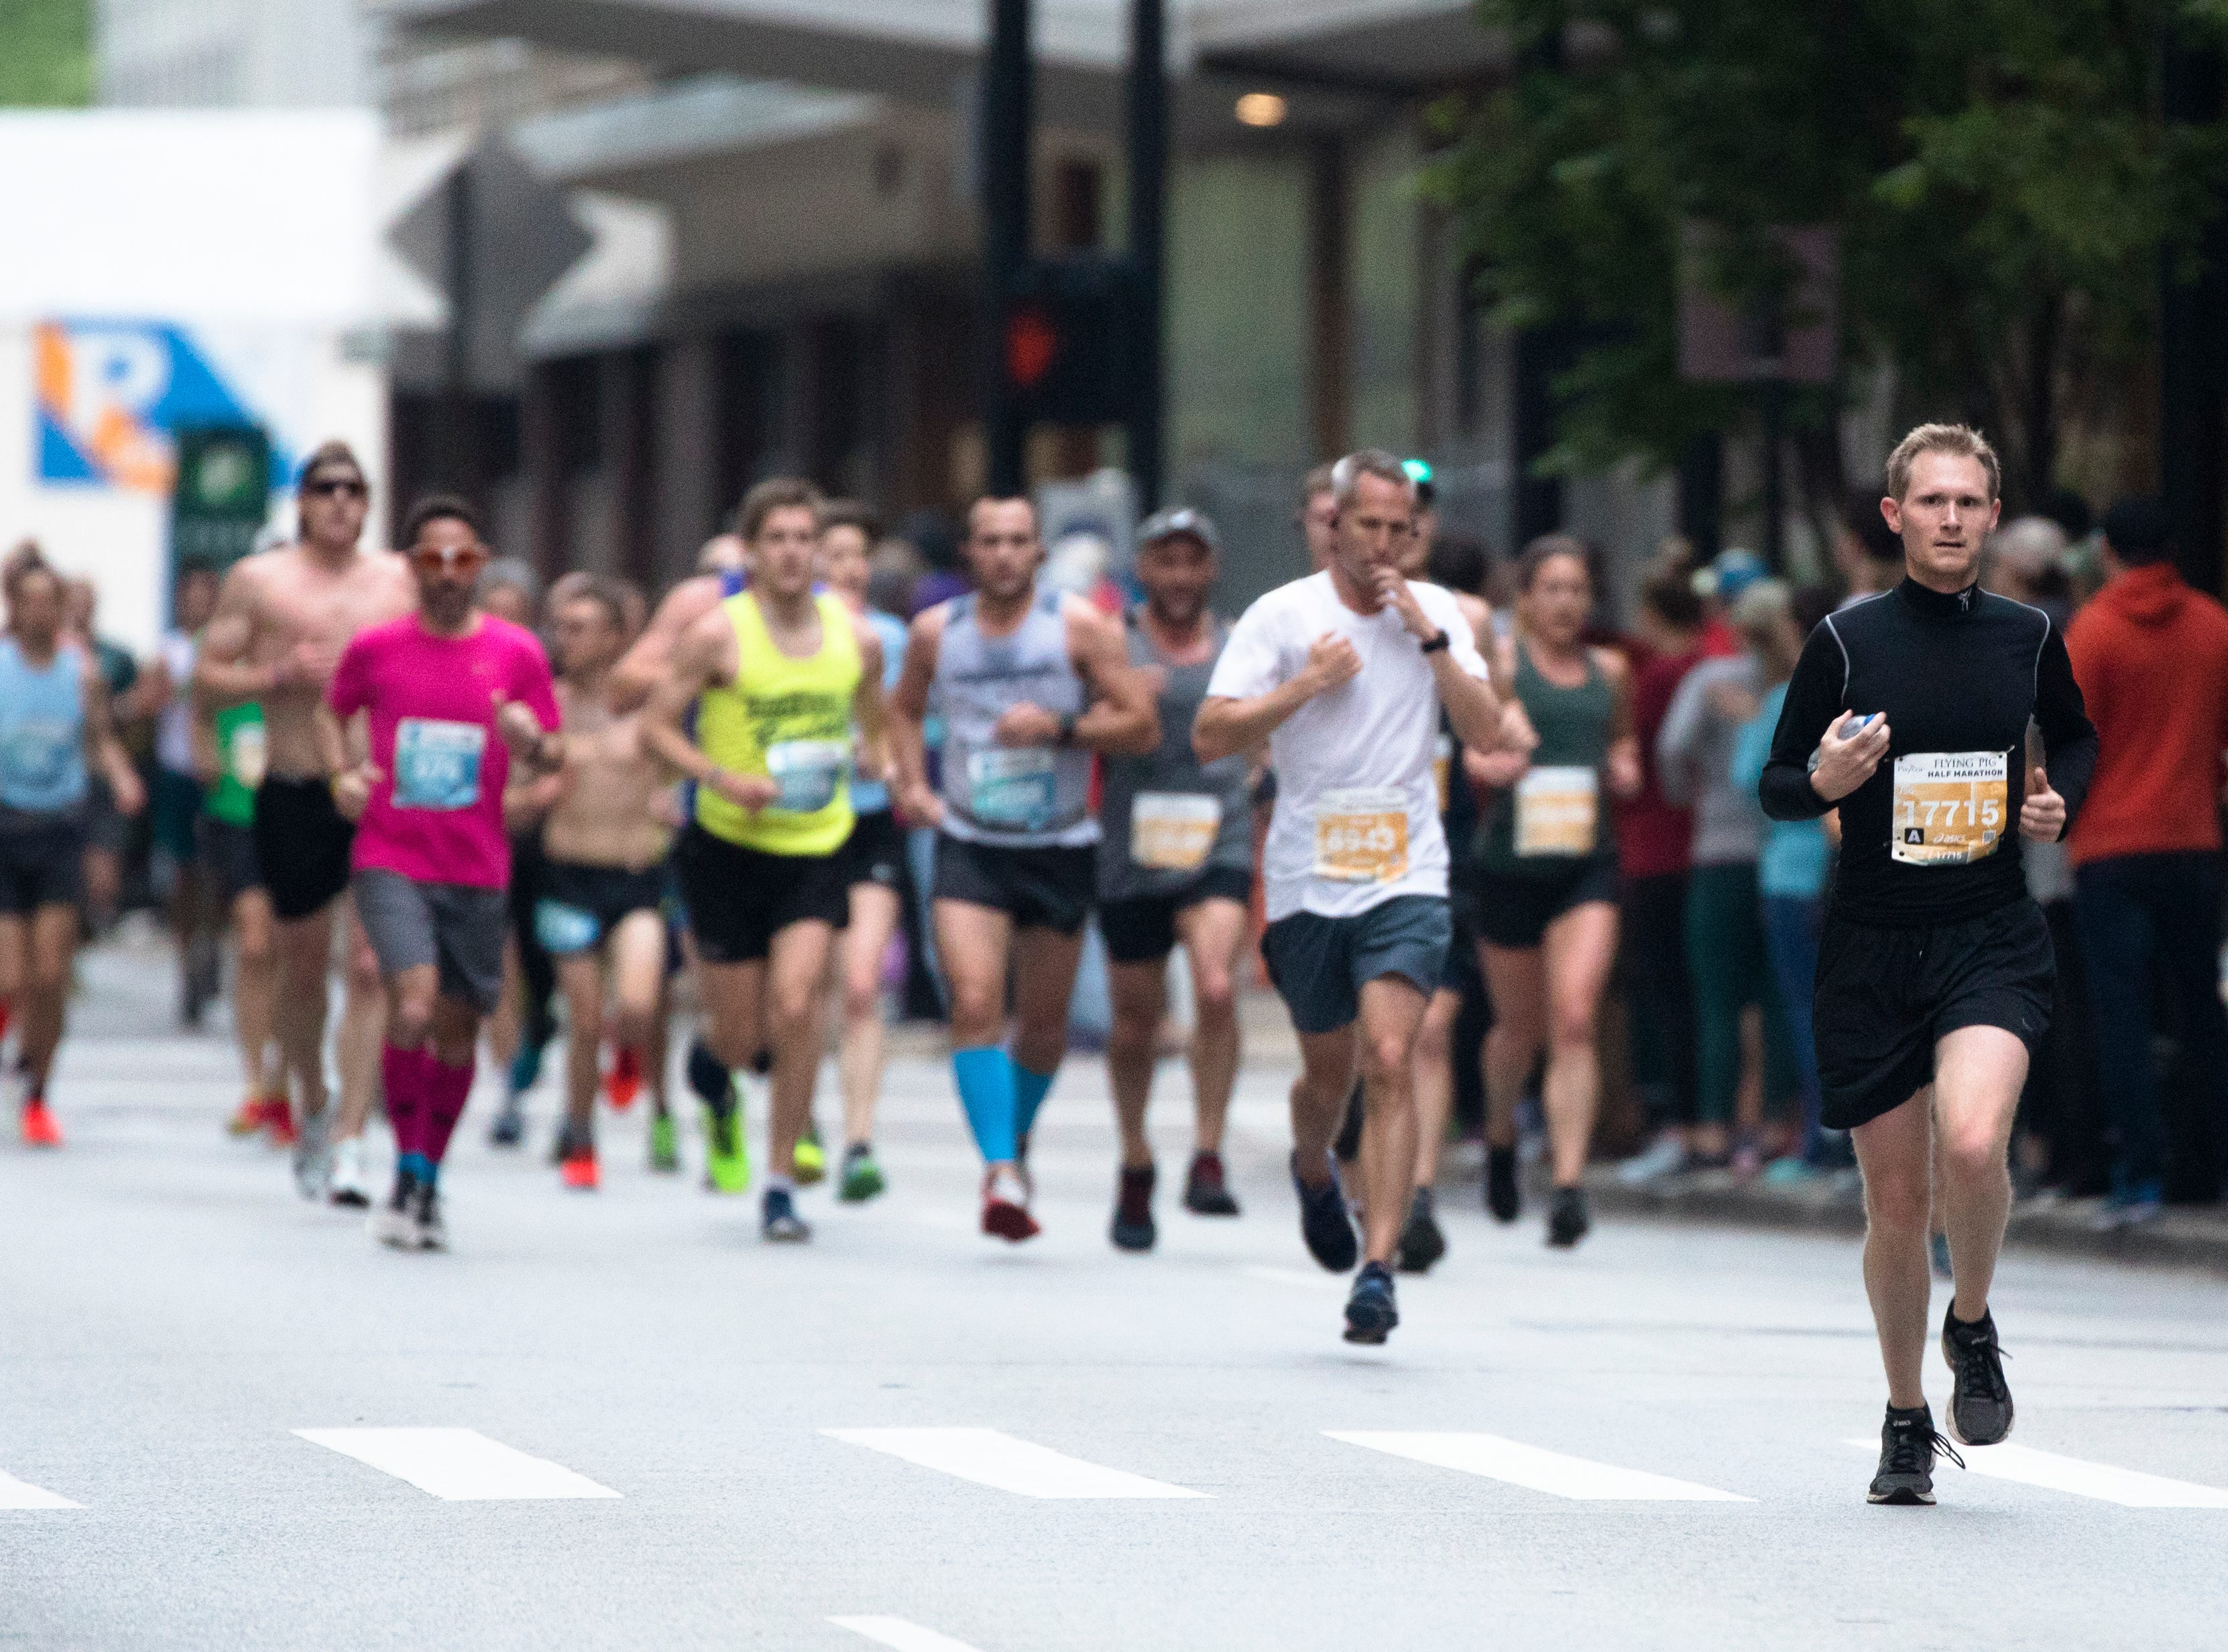 Nicholas Cook, of Liberty Township, runs down 7th street during the 21st annual Flying Pig Marathon Sunday, May 5, 2019.